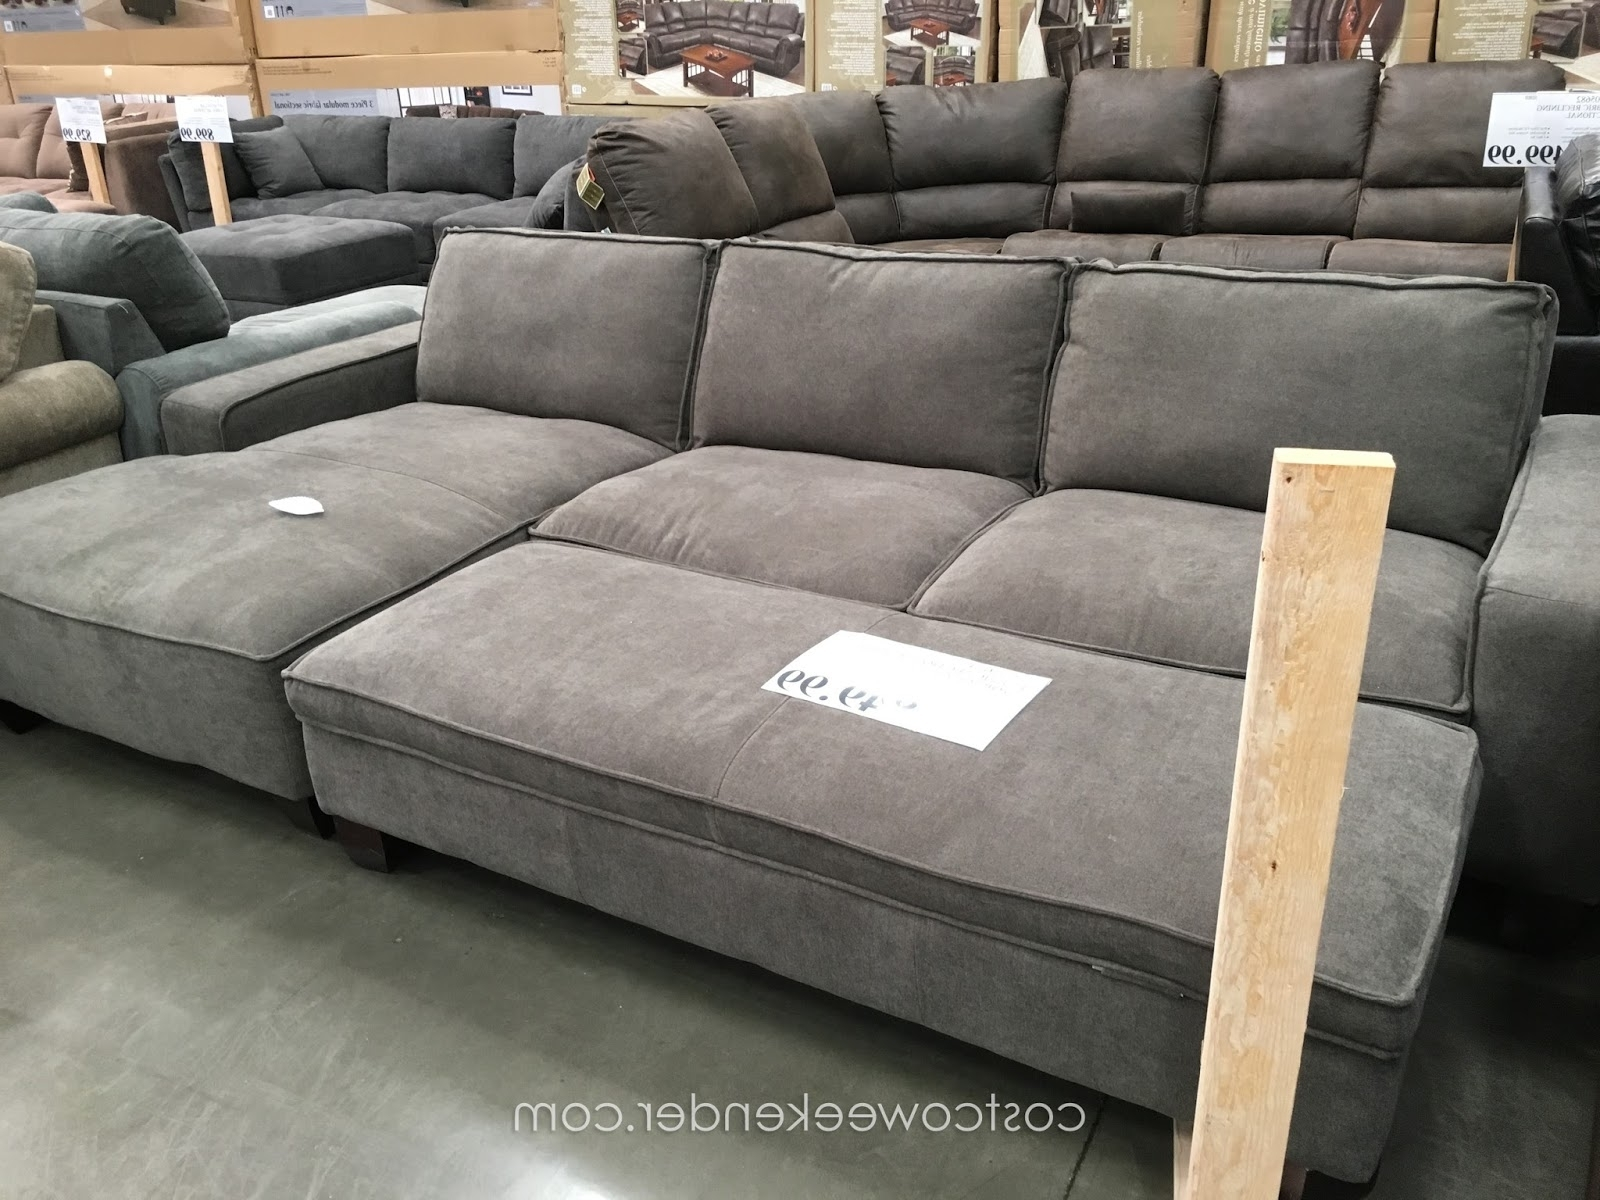 Latest Sectional Sofa Design: Sectional Sofa With Chaise And Ottoman Within Sofas With Chaise And Ottoman (View 6 of 20)